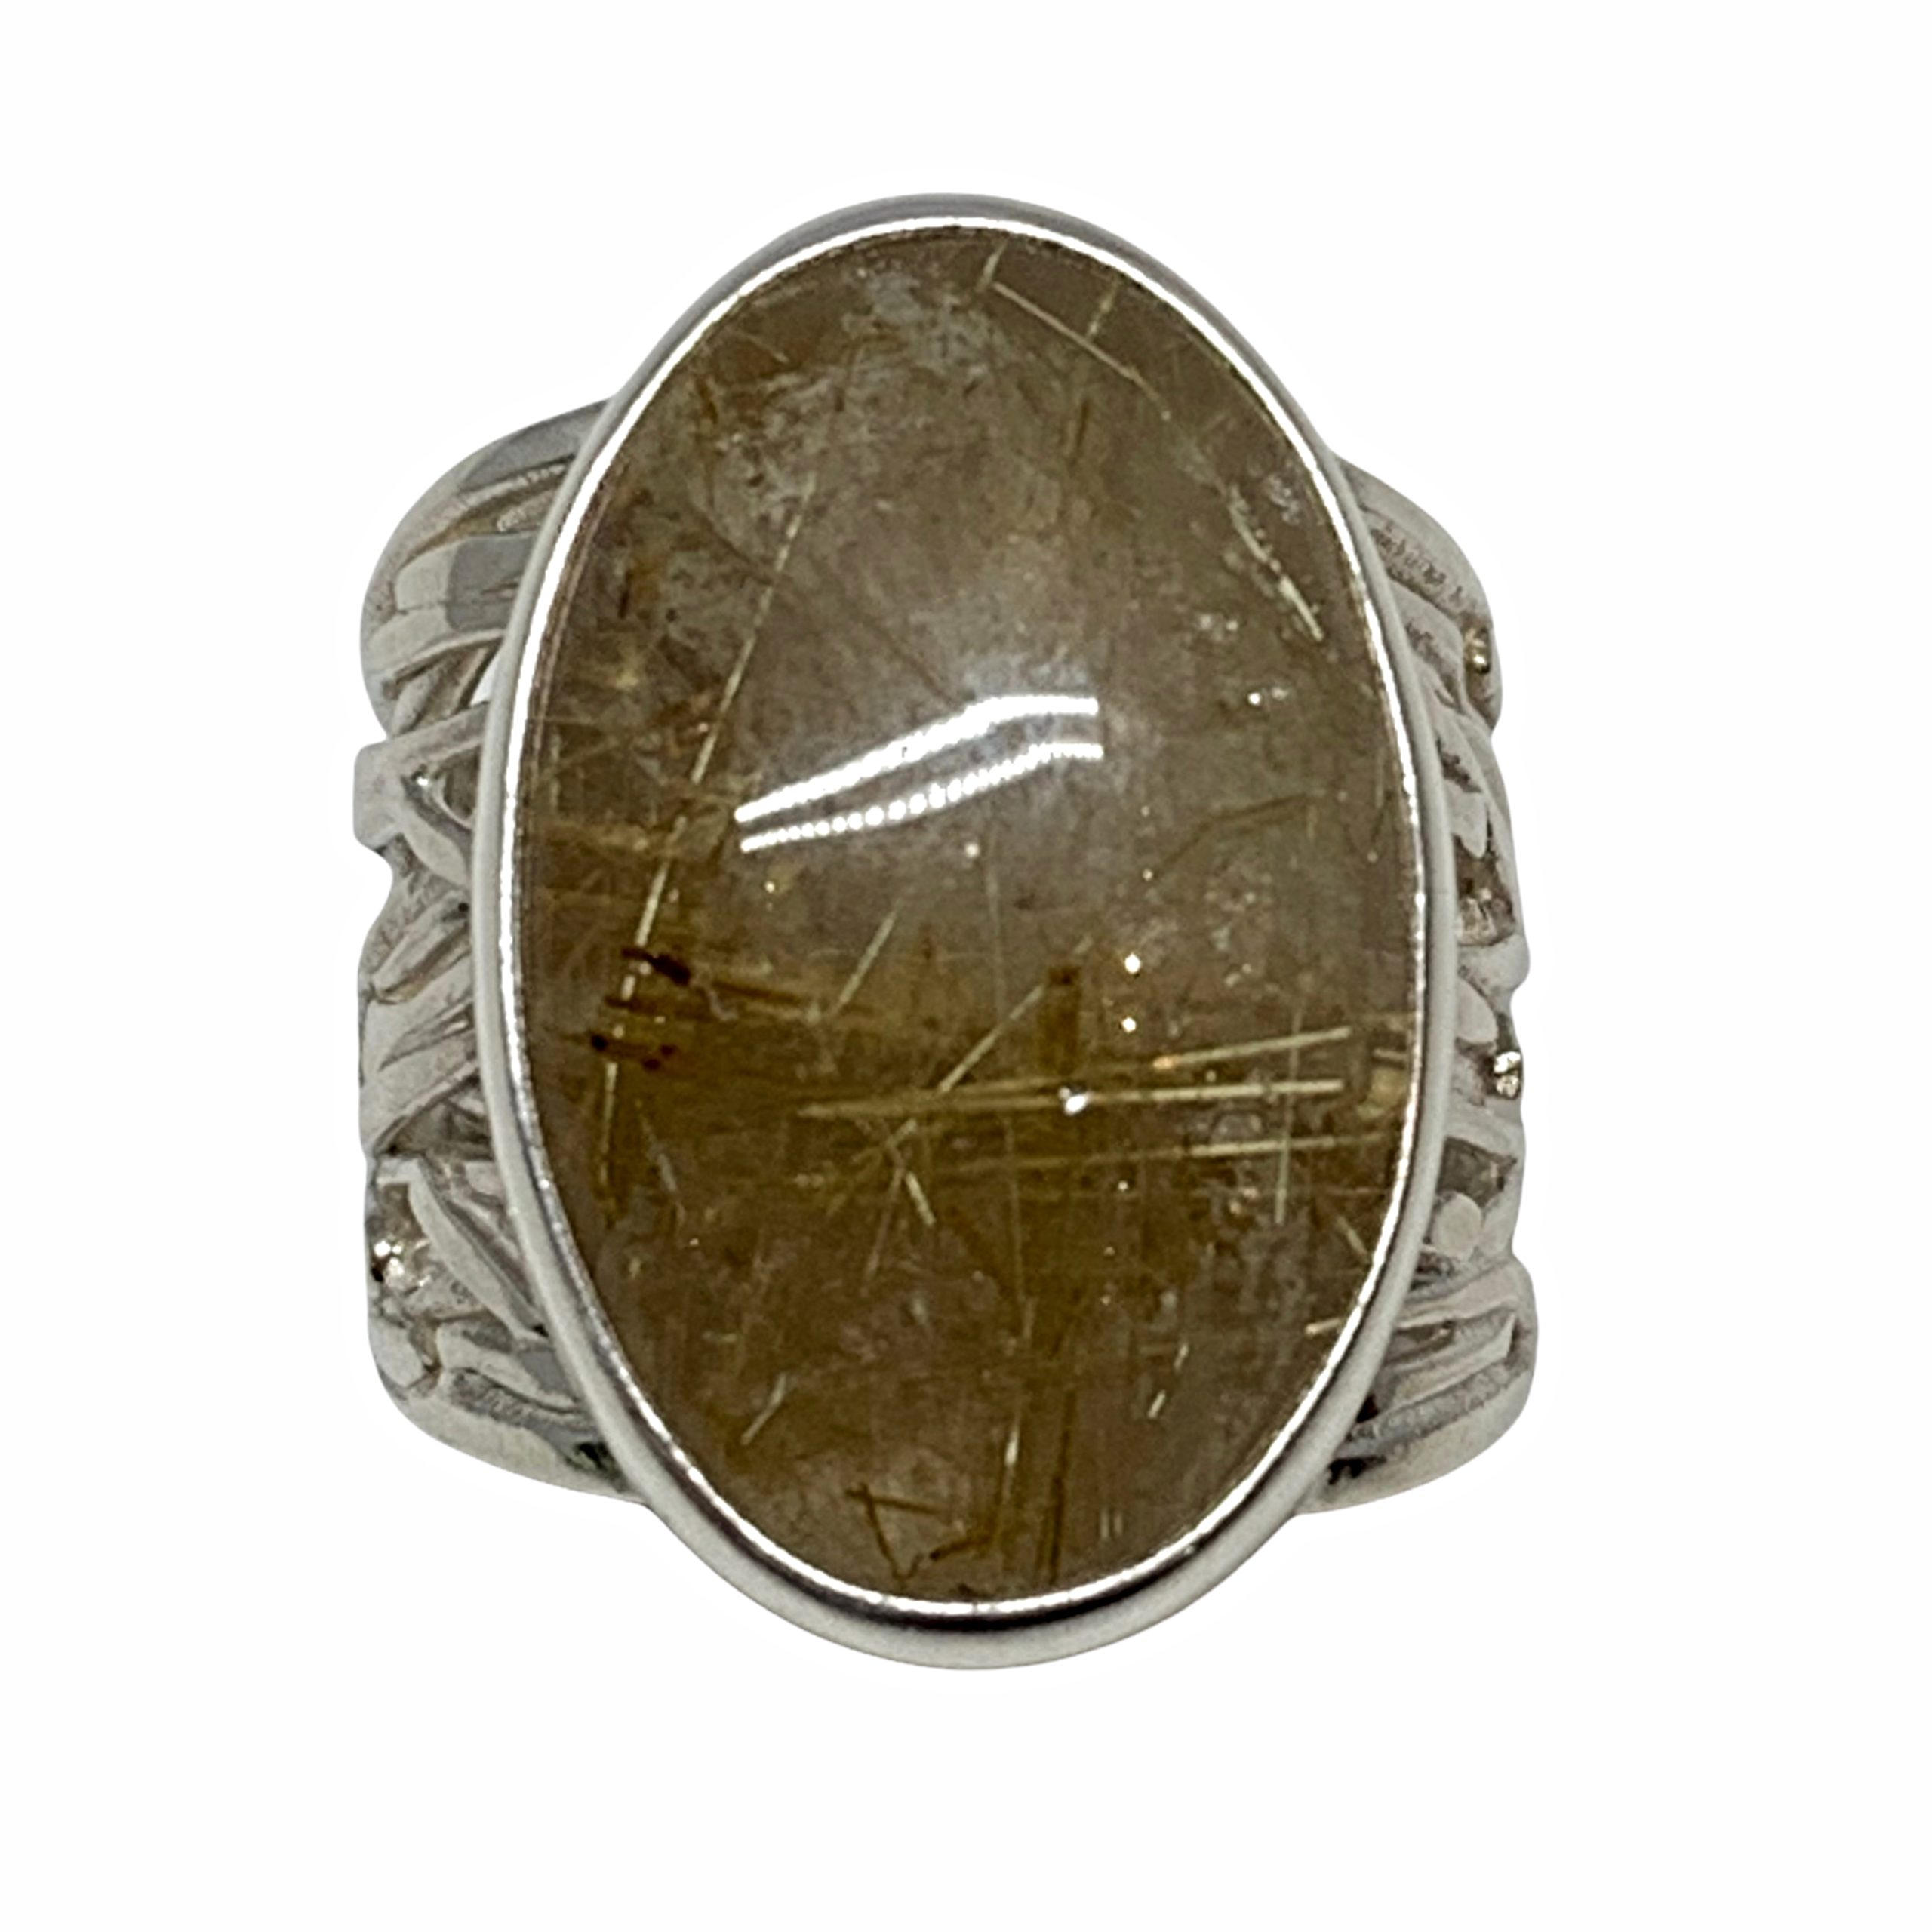 Handmade sterling silver and rutilated quartz ring by A&R Jewellery | Effusion Art Gallery + Cast Glass Studio, Invermere BC